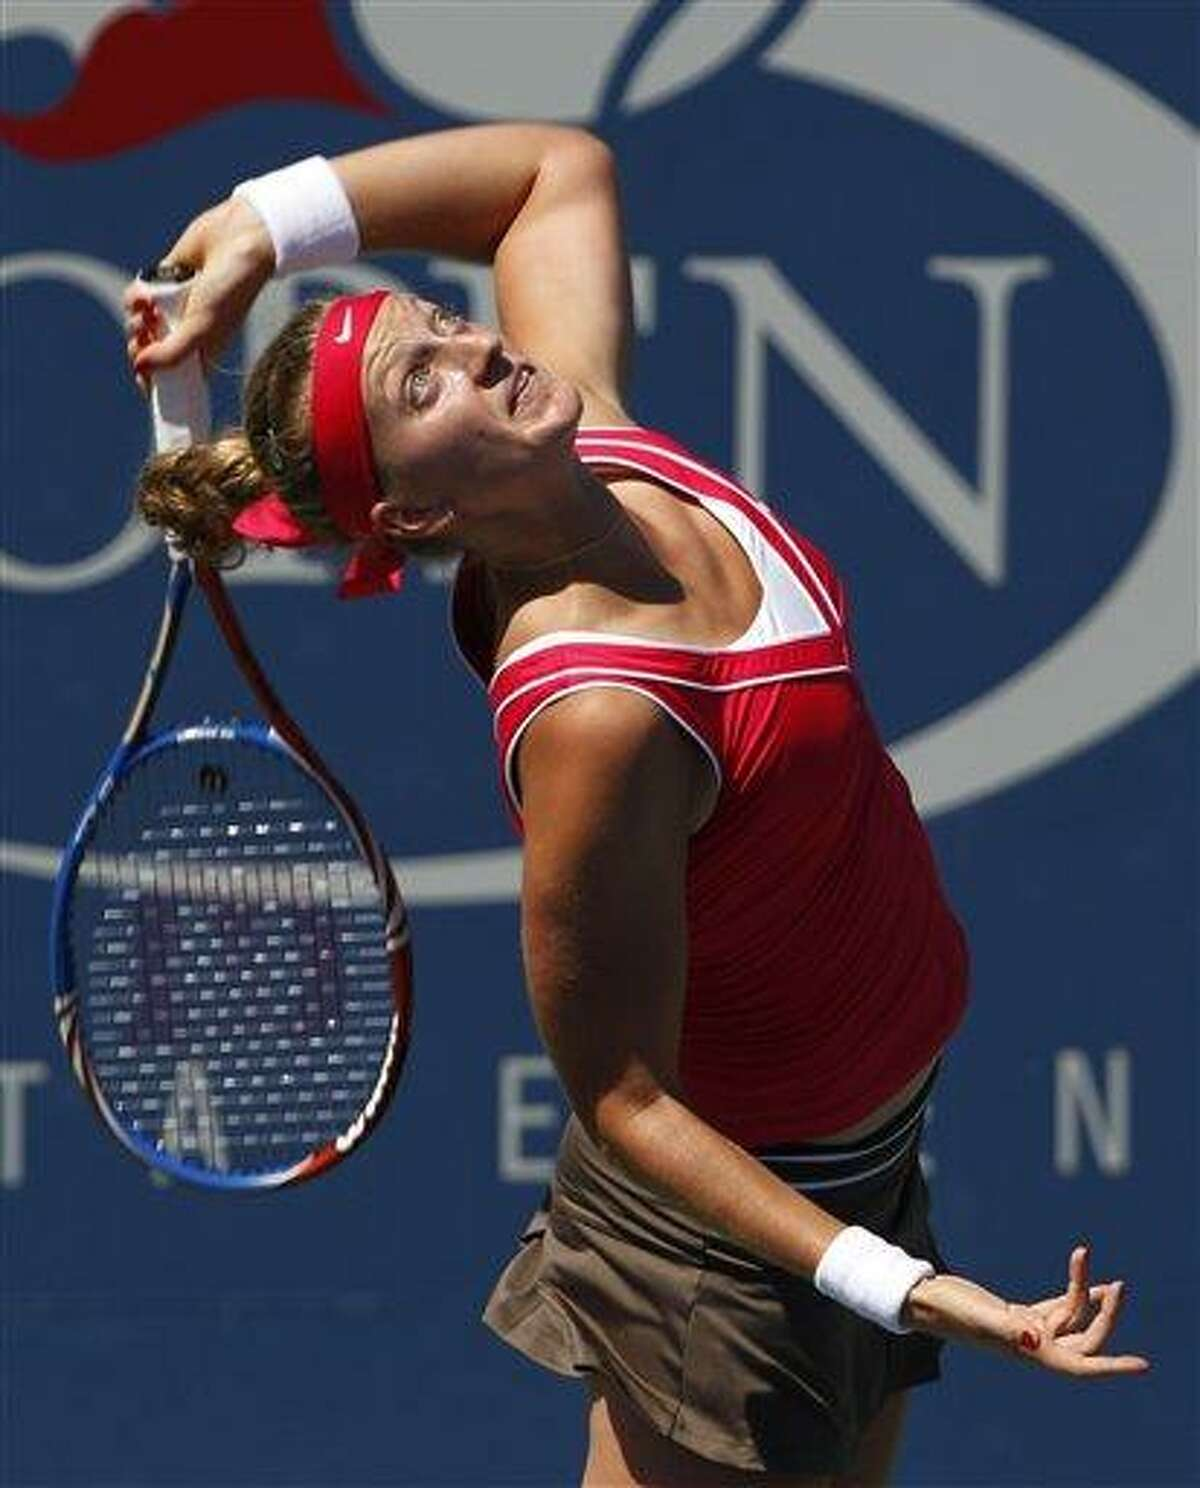 Petra Kvitova of the Czech Republic returns a shot to Alexandra Dulgheru of Romania during the first round of the U.S. Open tennis tournament in New York, Monday, Aug. 29, 2011. (AP Photo/Elise Amendola)